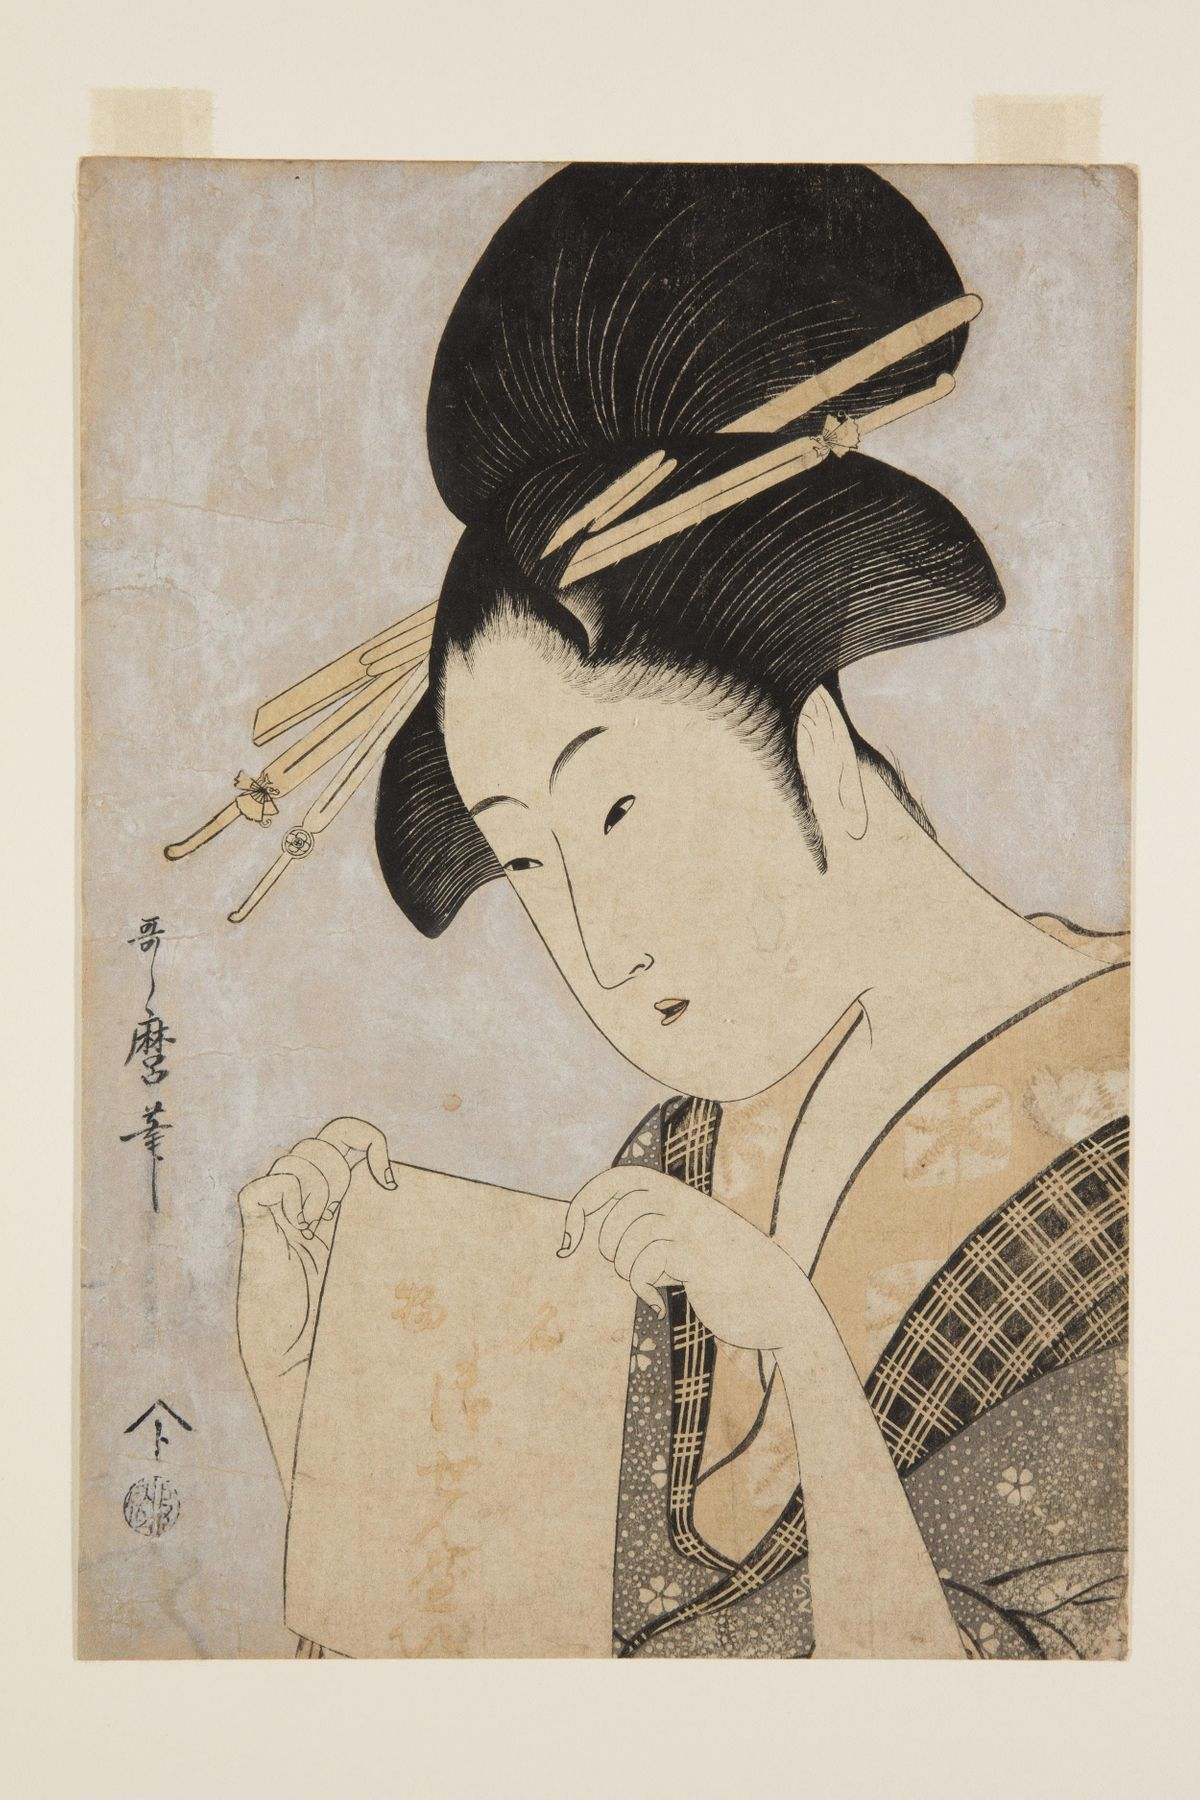 Masters of Japanese Prints Life in the City